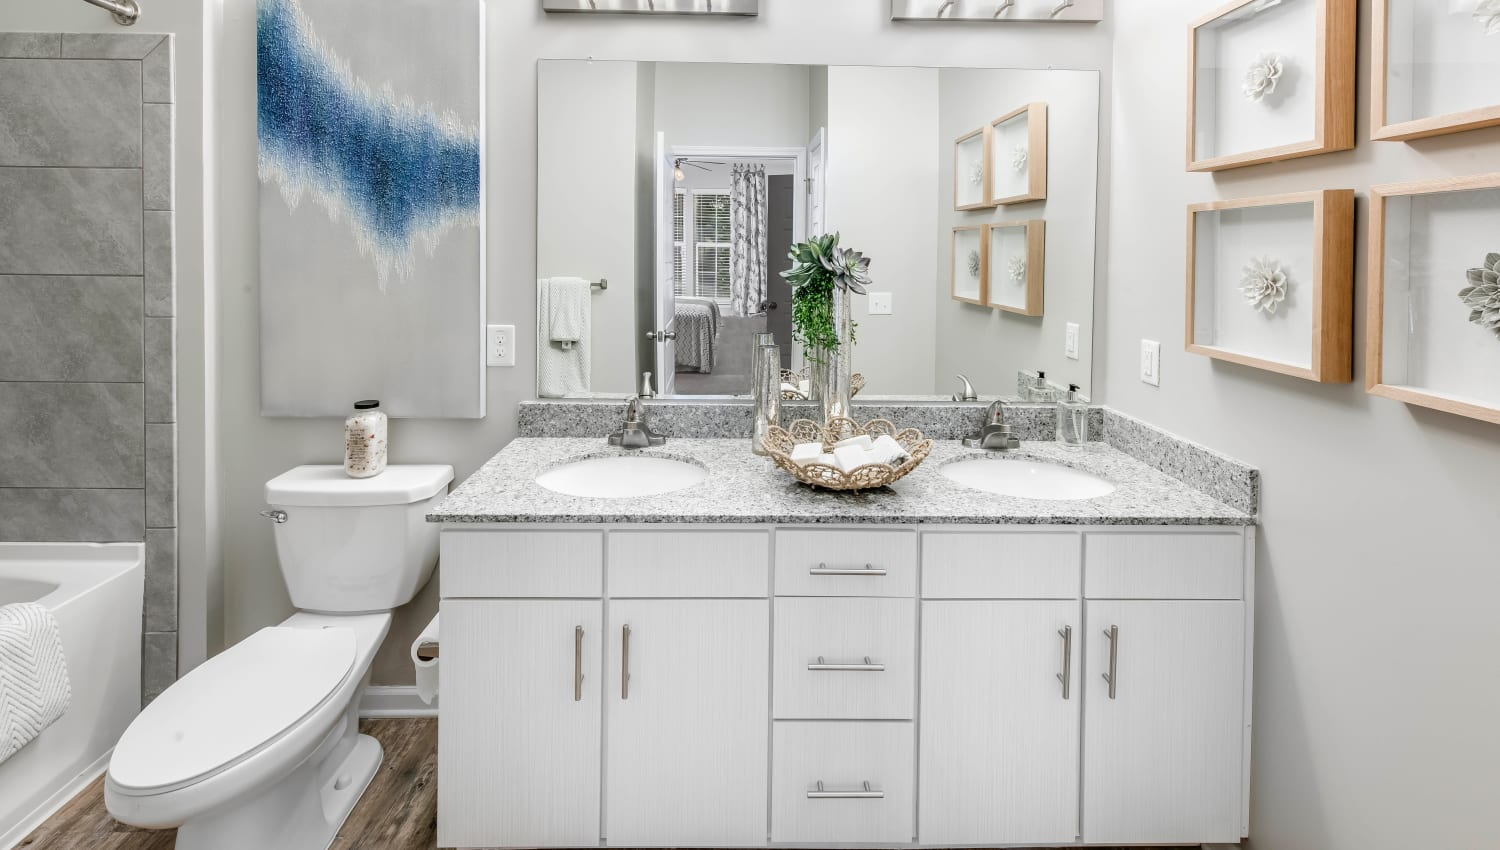 Large vanity mirror and a granite countertop in a model home's bathroom at Canopy at Citrus Park in Tampa, Florida